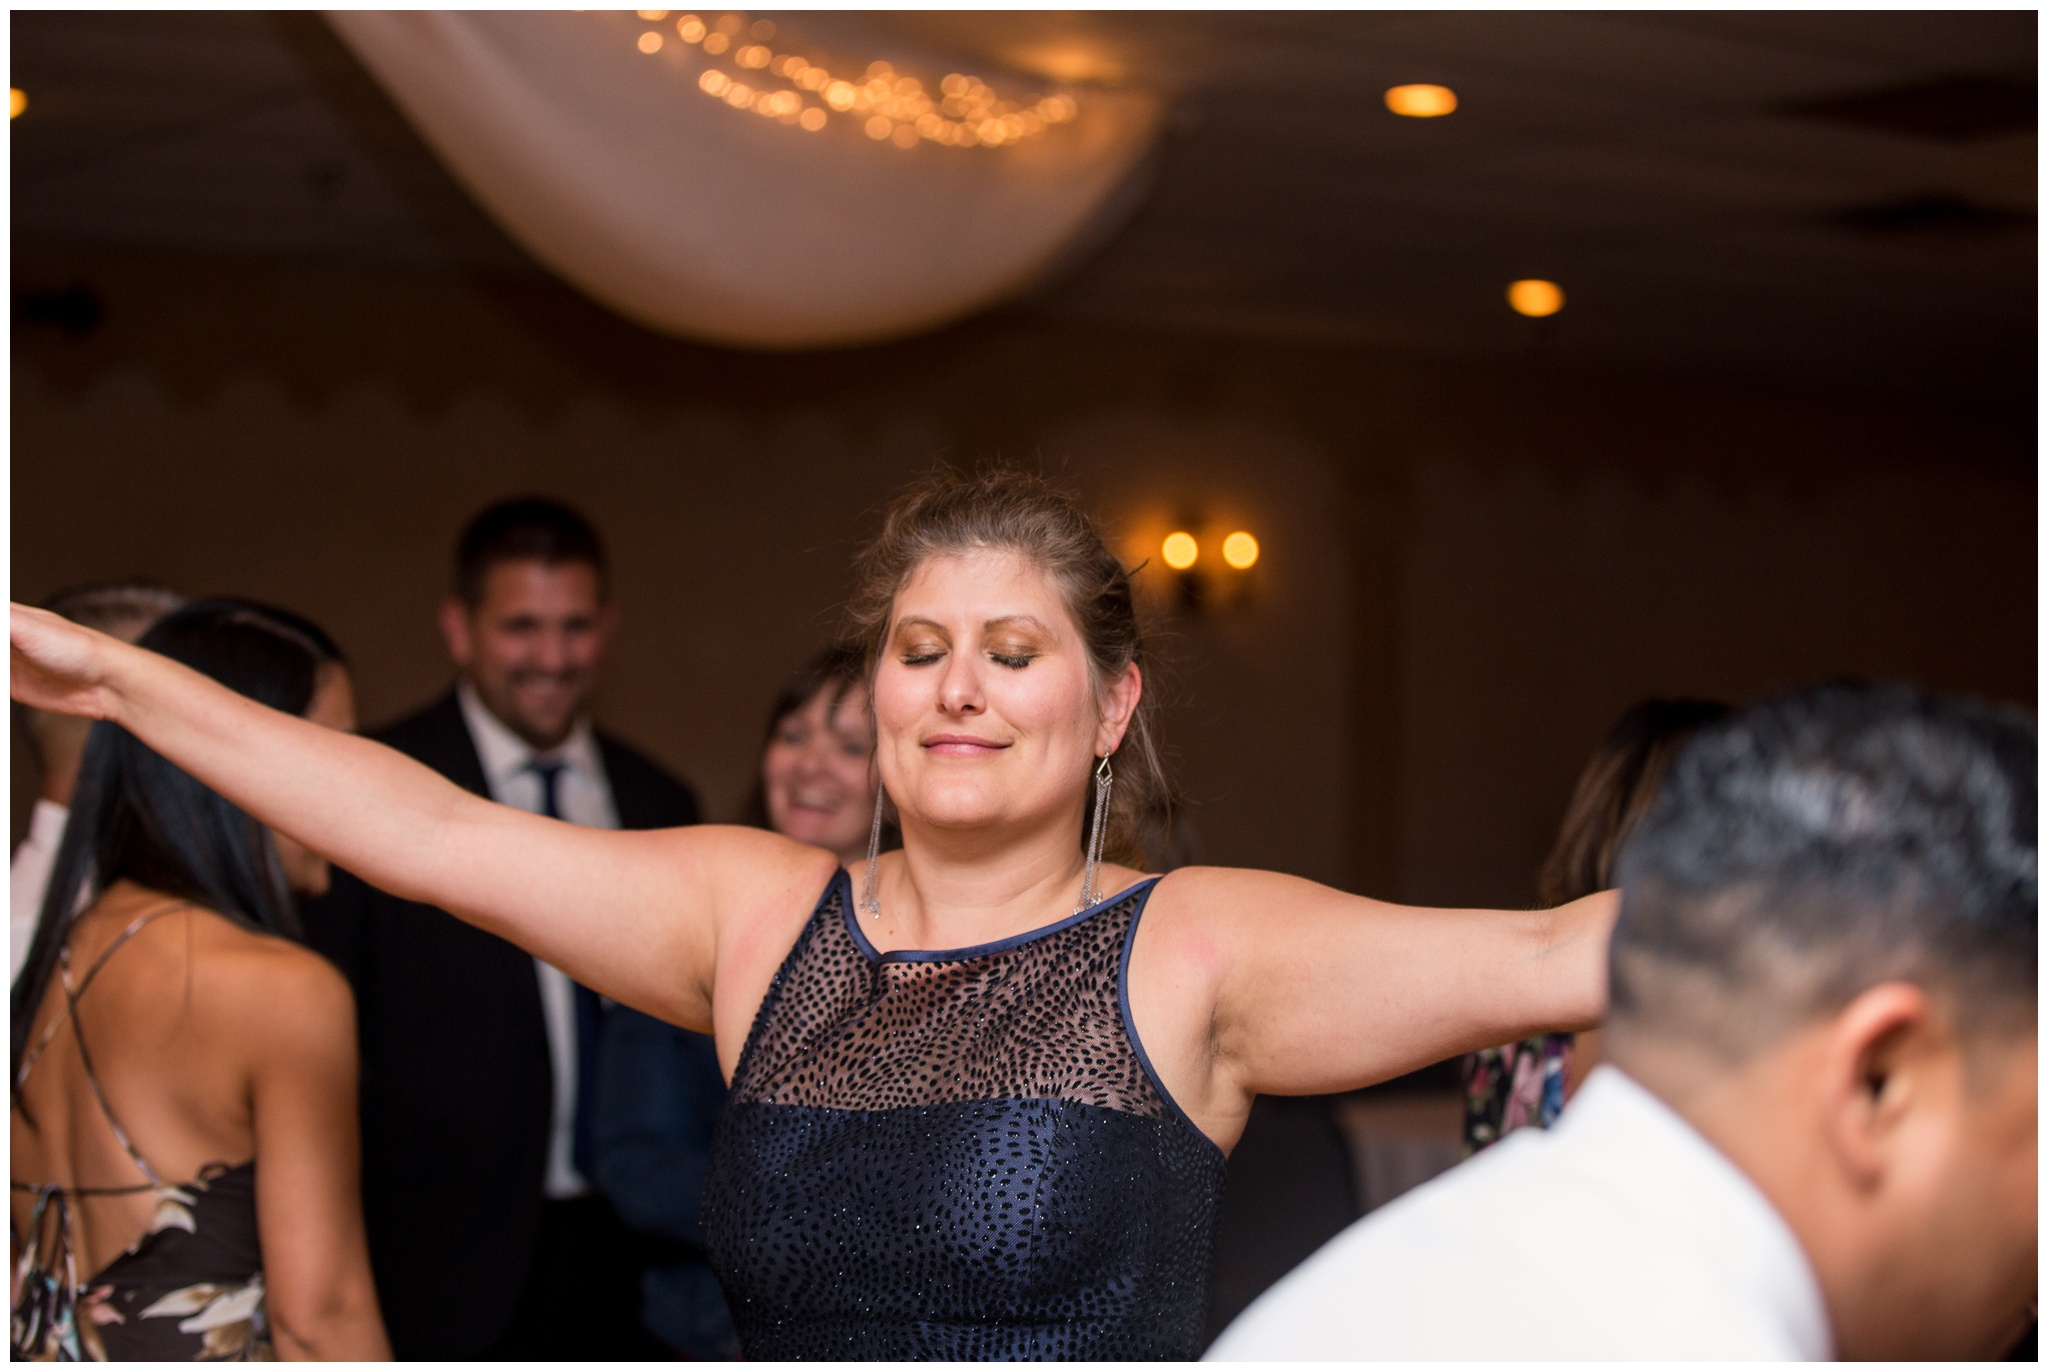 bride dances during reception at Romer's Catering in Greenville Ohio